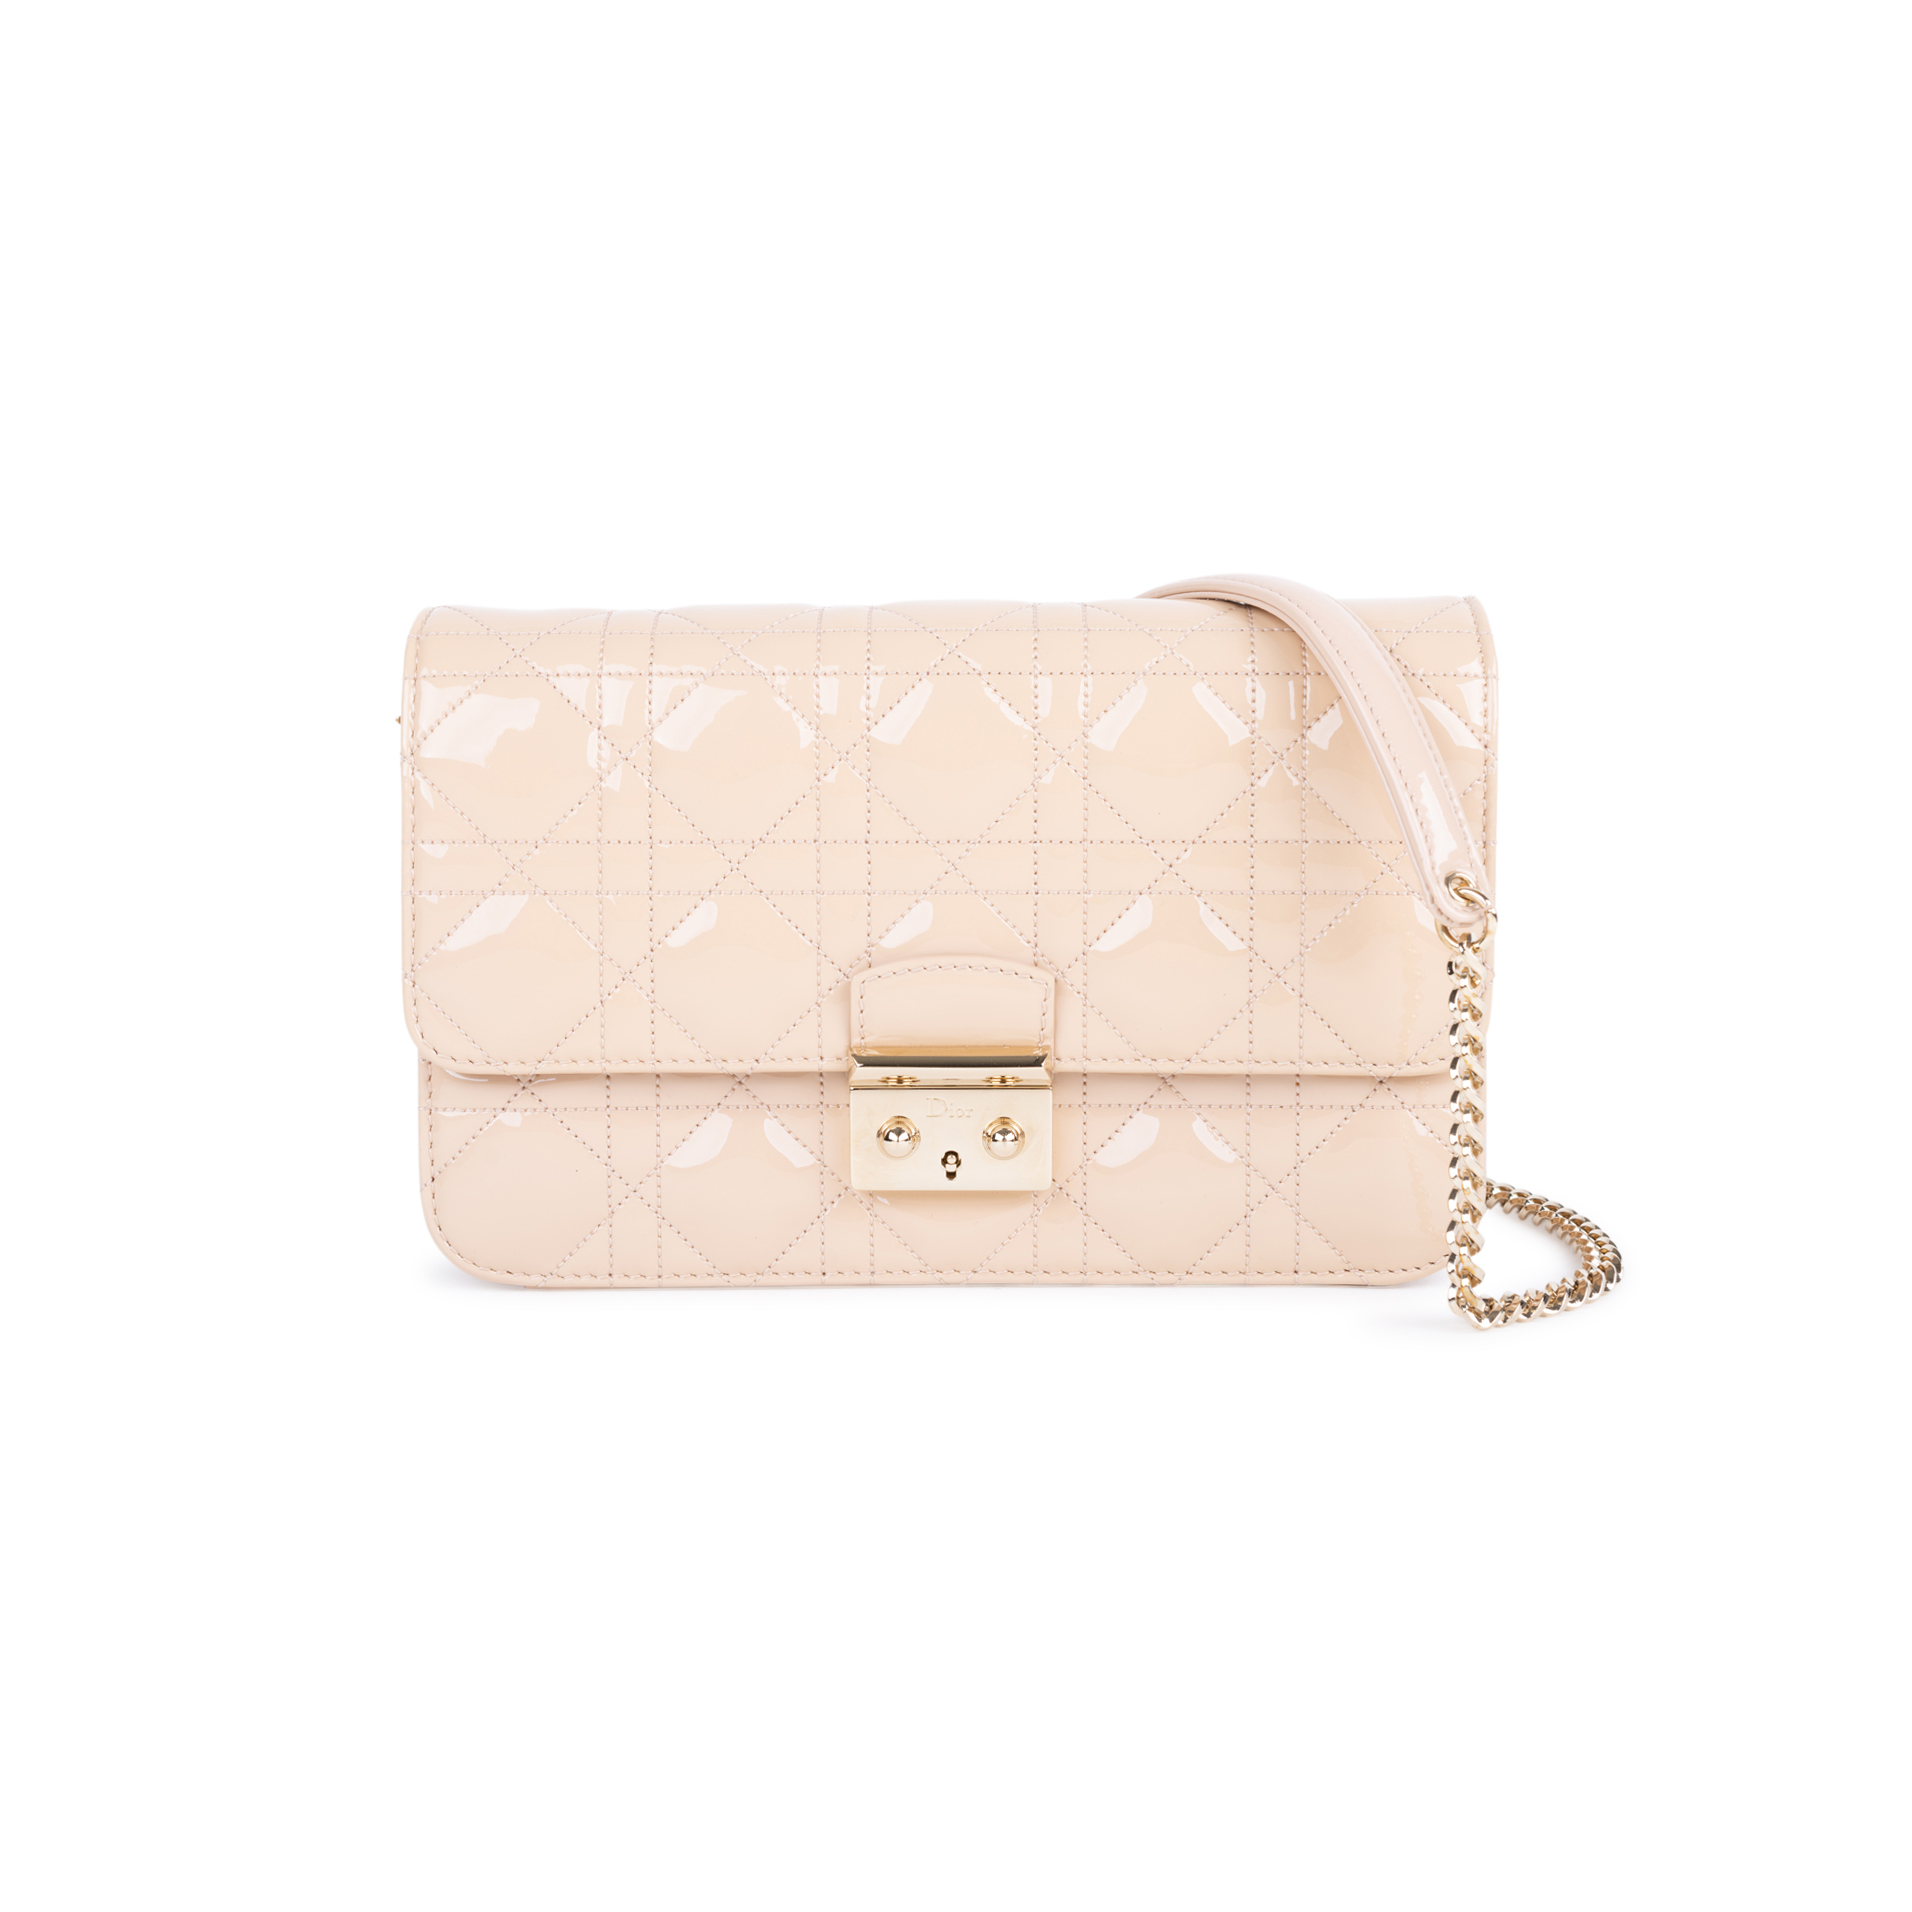 Authentic Pre Owned Christian Dior New Lock Pouch Bag (PSS-328-00017)   THE  FIFTH COLLECTION® 840f0d5b5a